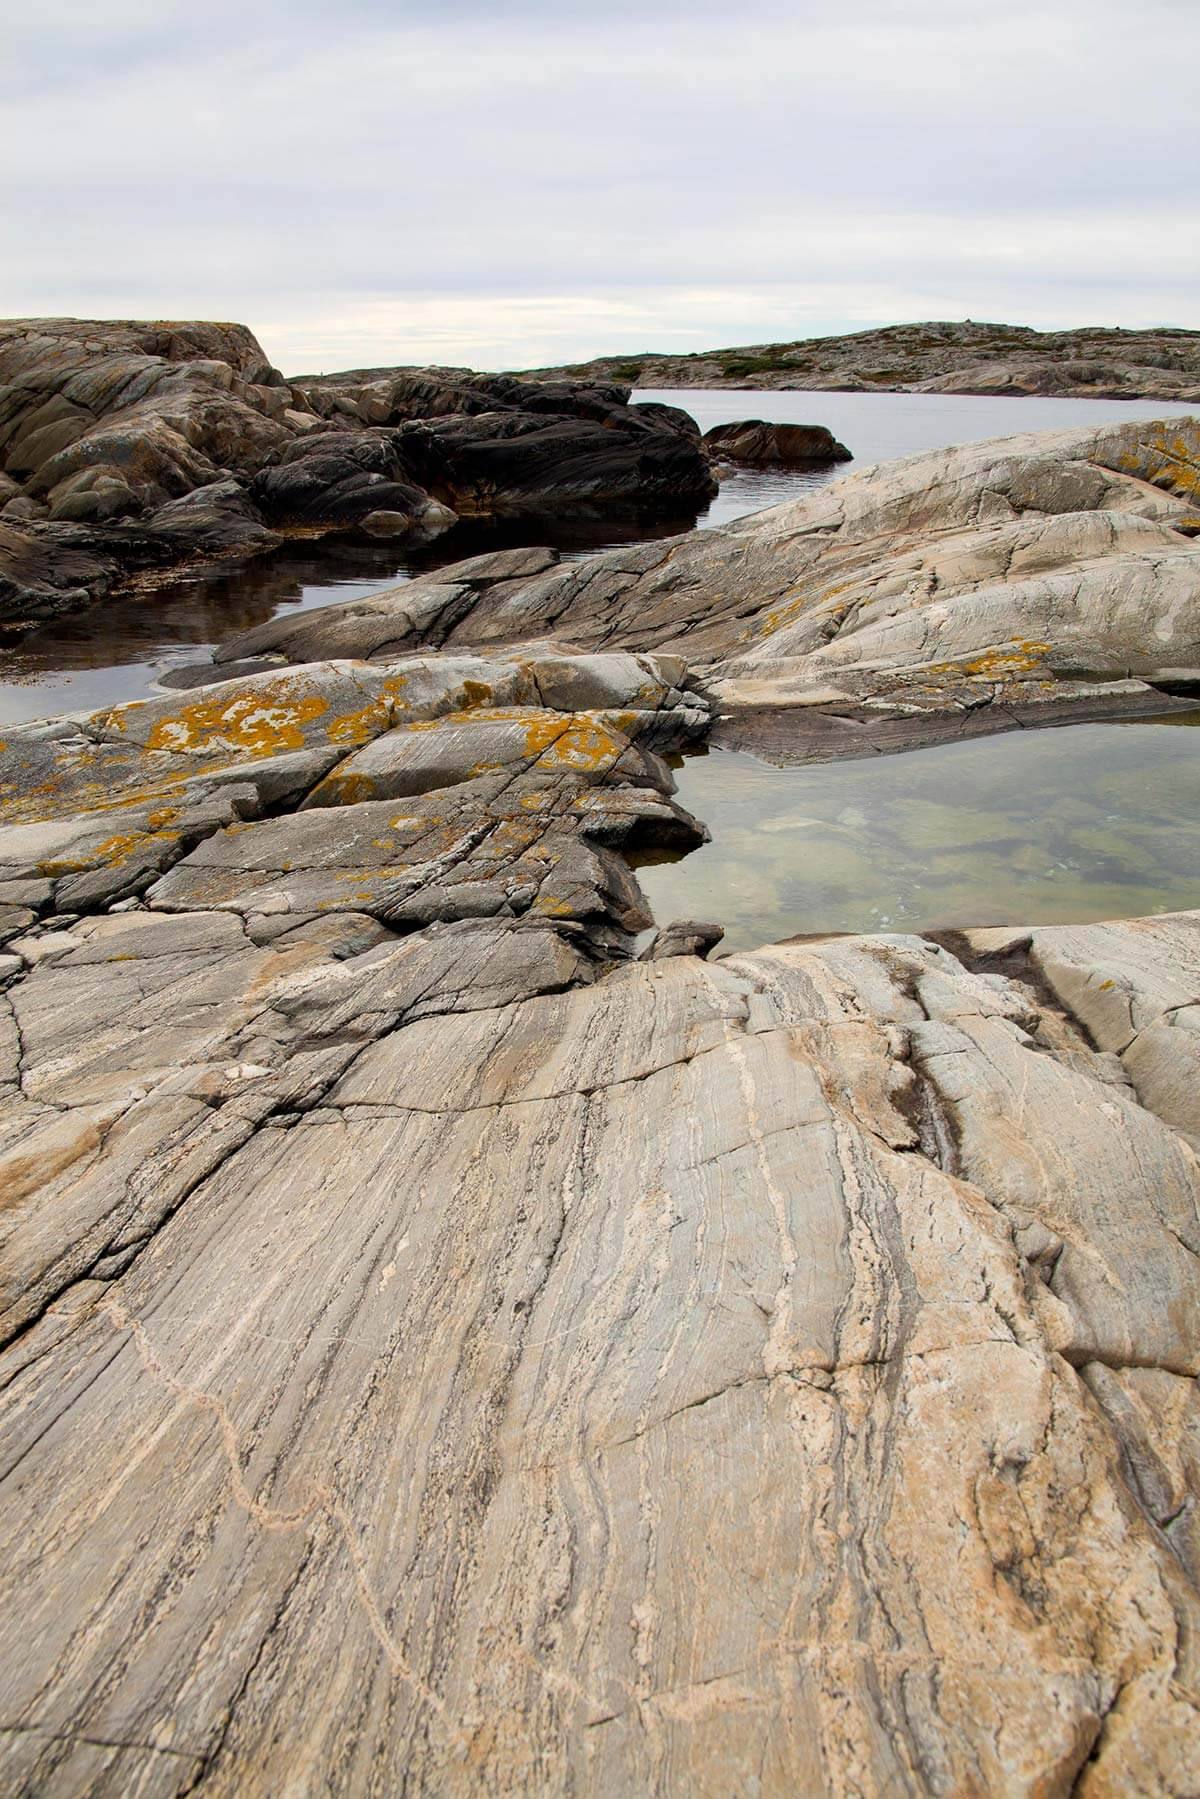 A view of the coastline along the Swedish west coast, showing rock formations emerging from the water